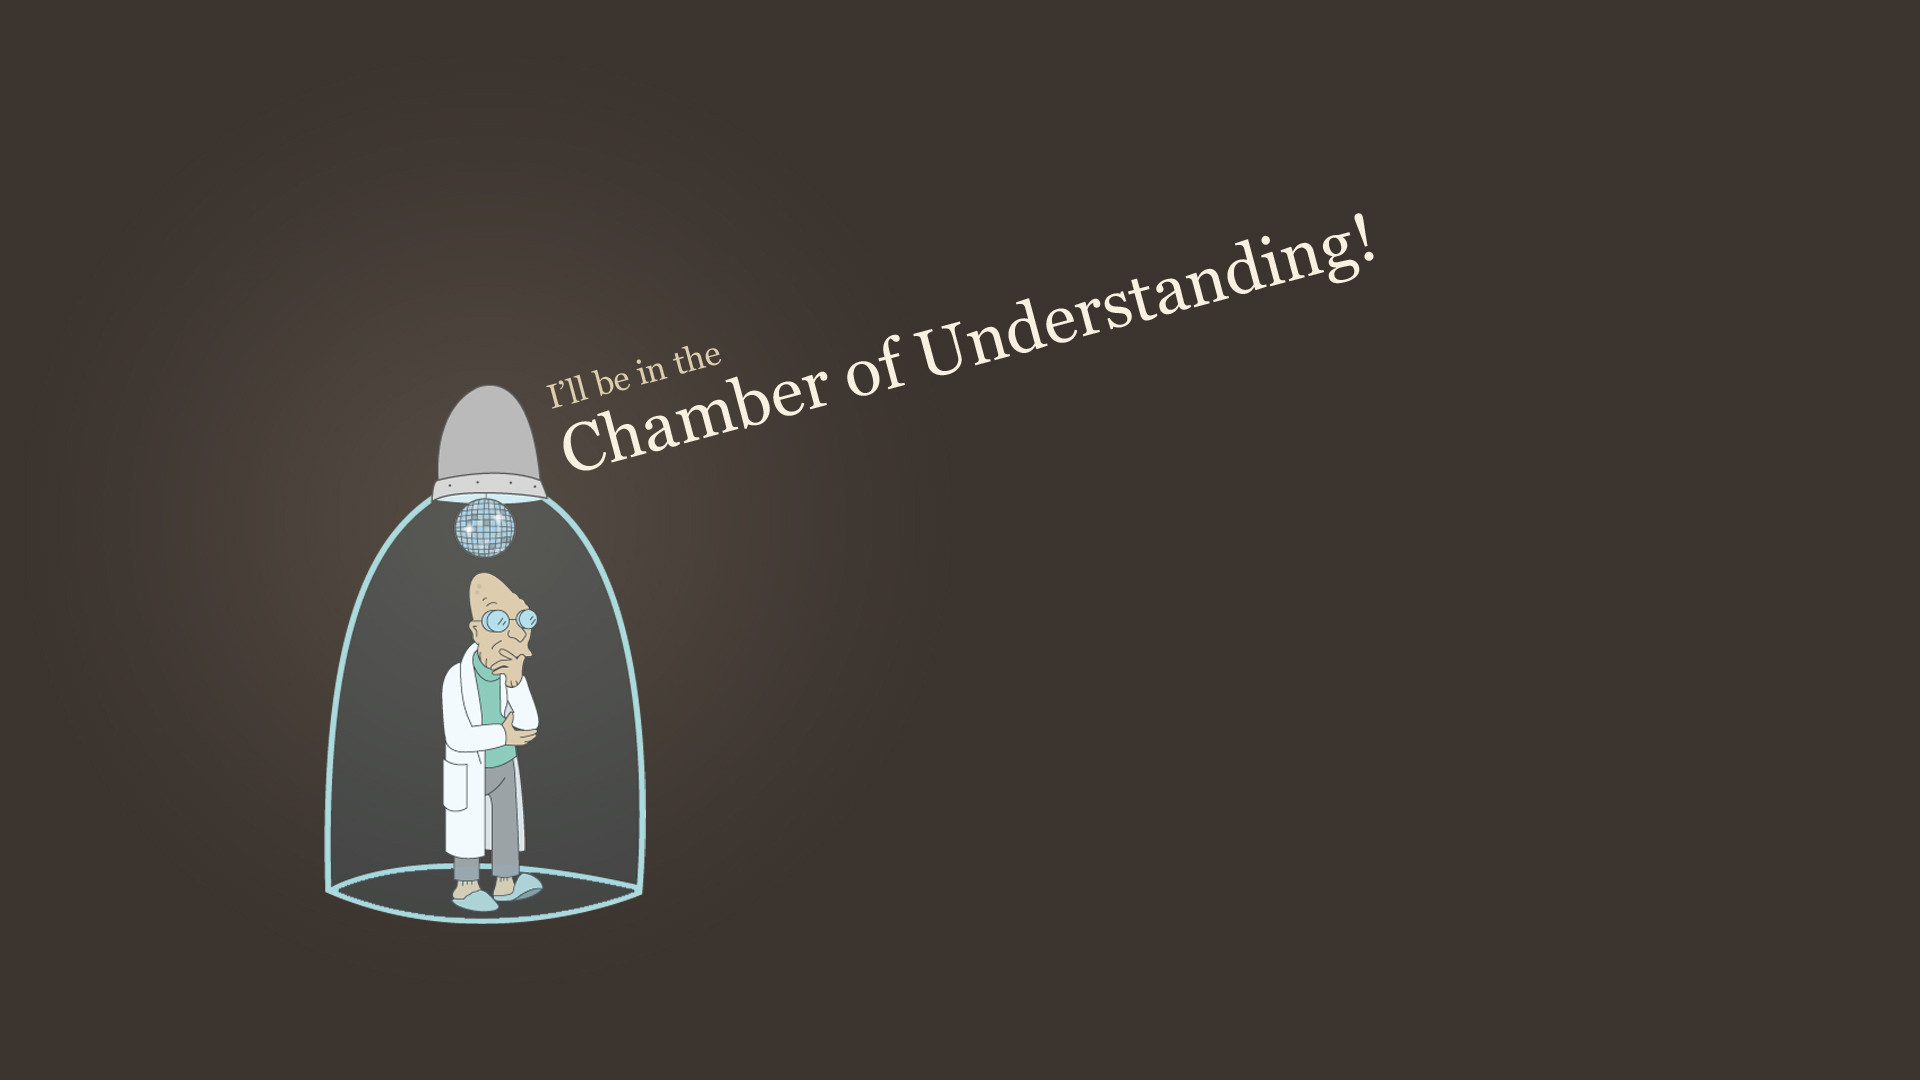 I'll be in the Chamber of Understanding!